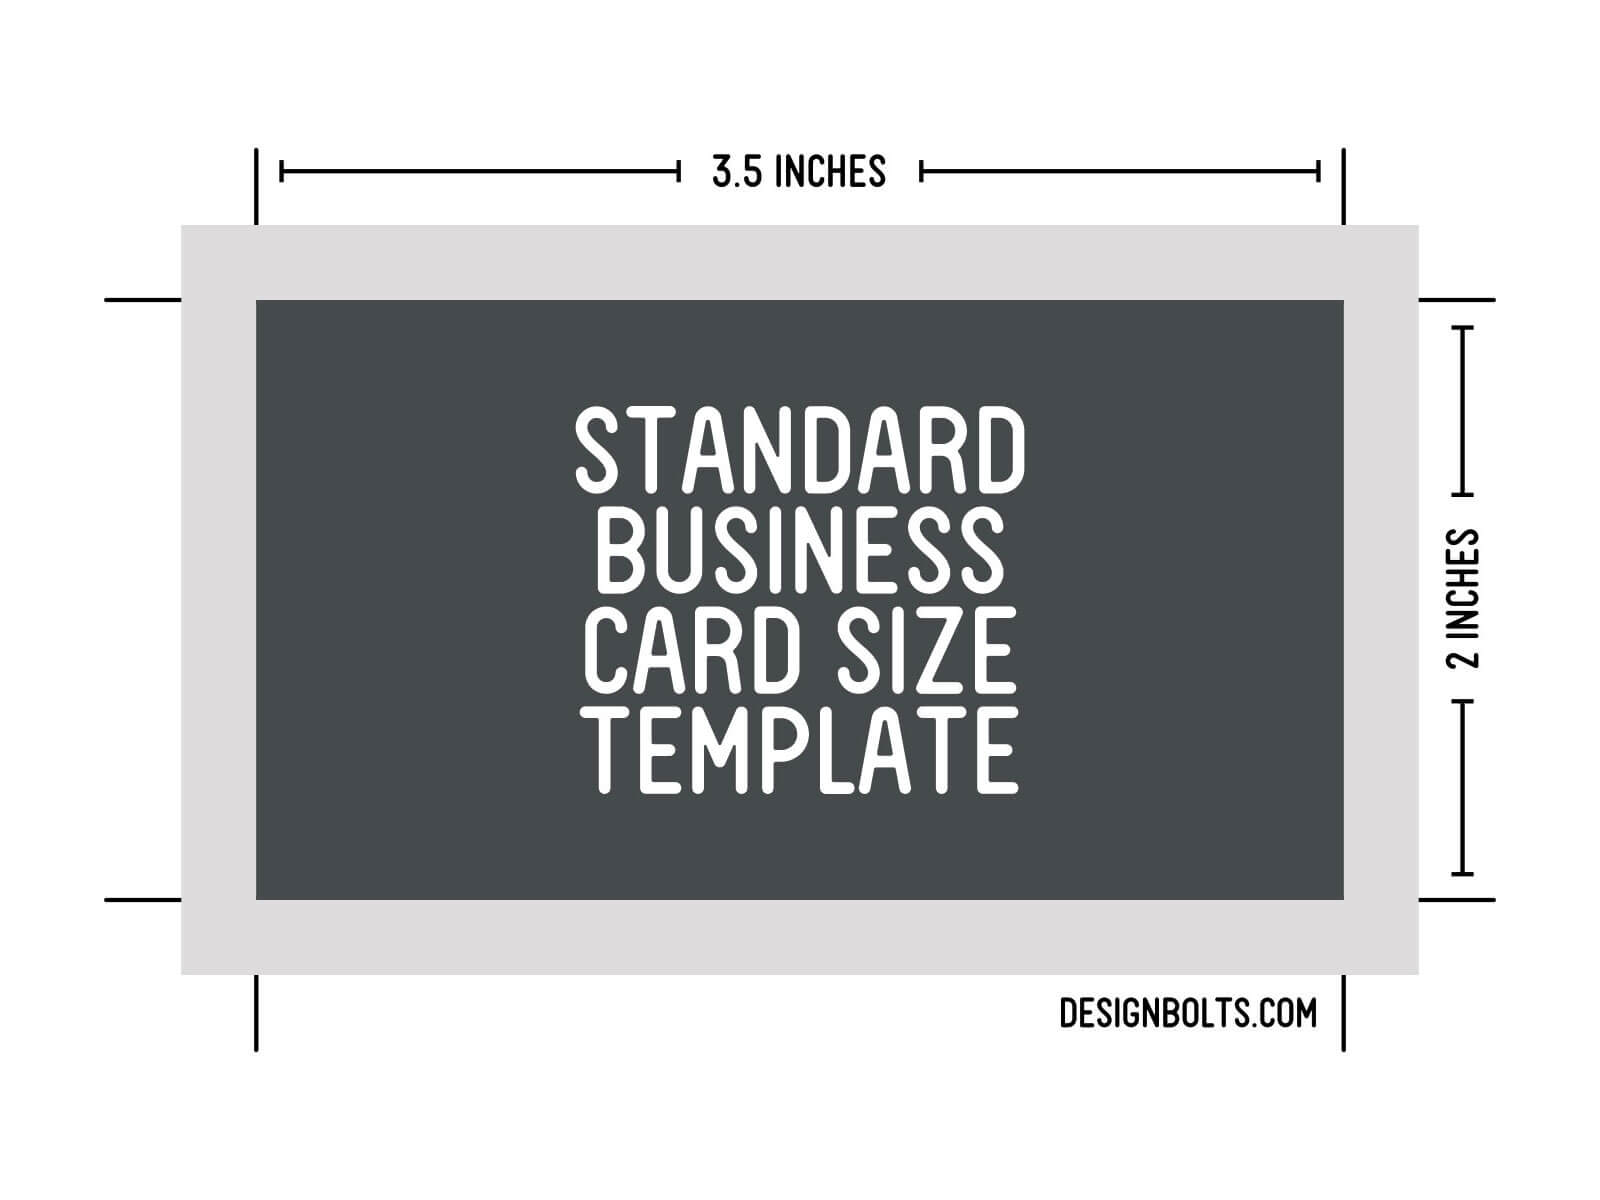 15 Psd Business Card Template Size Images - Standard Regarding Business Card Size Template Psd